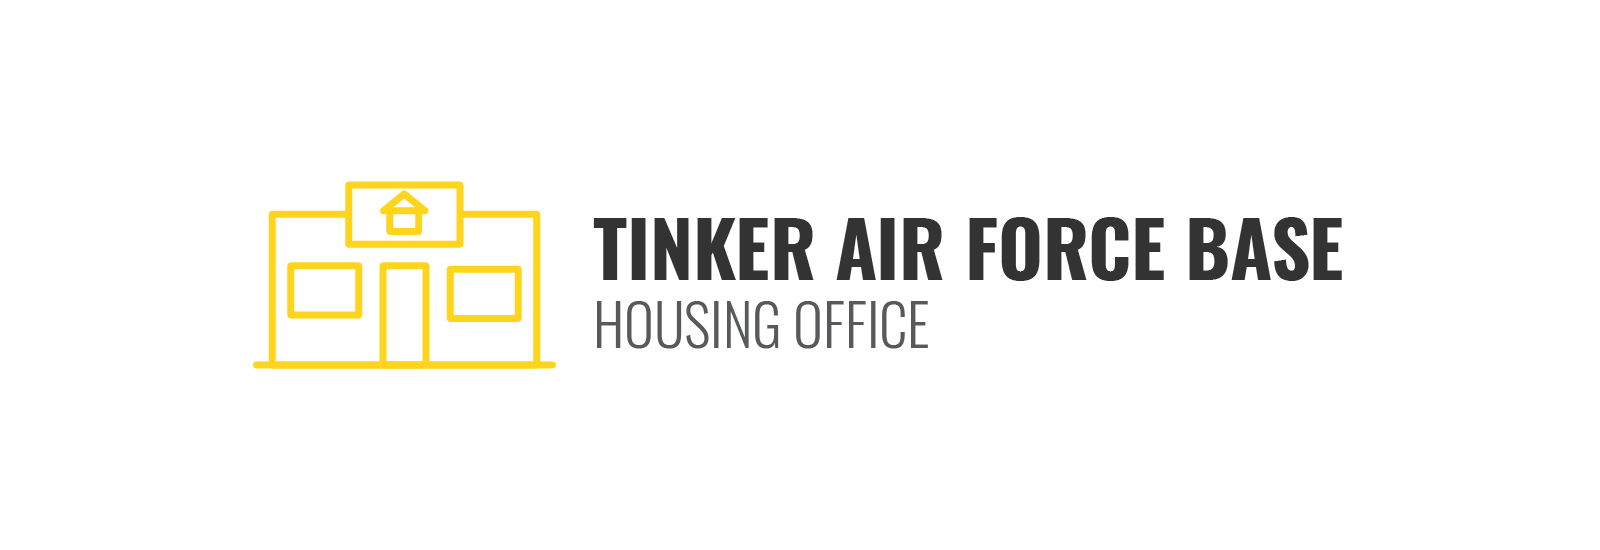 Tinker AFB Housing Office